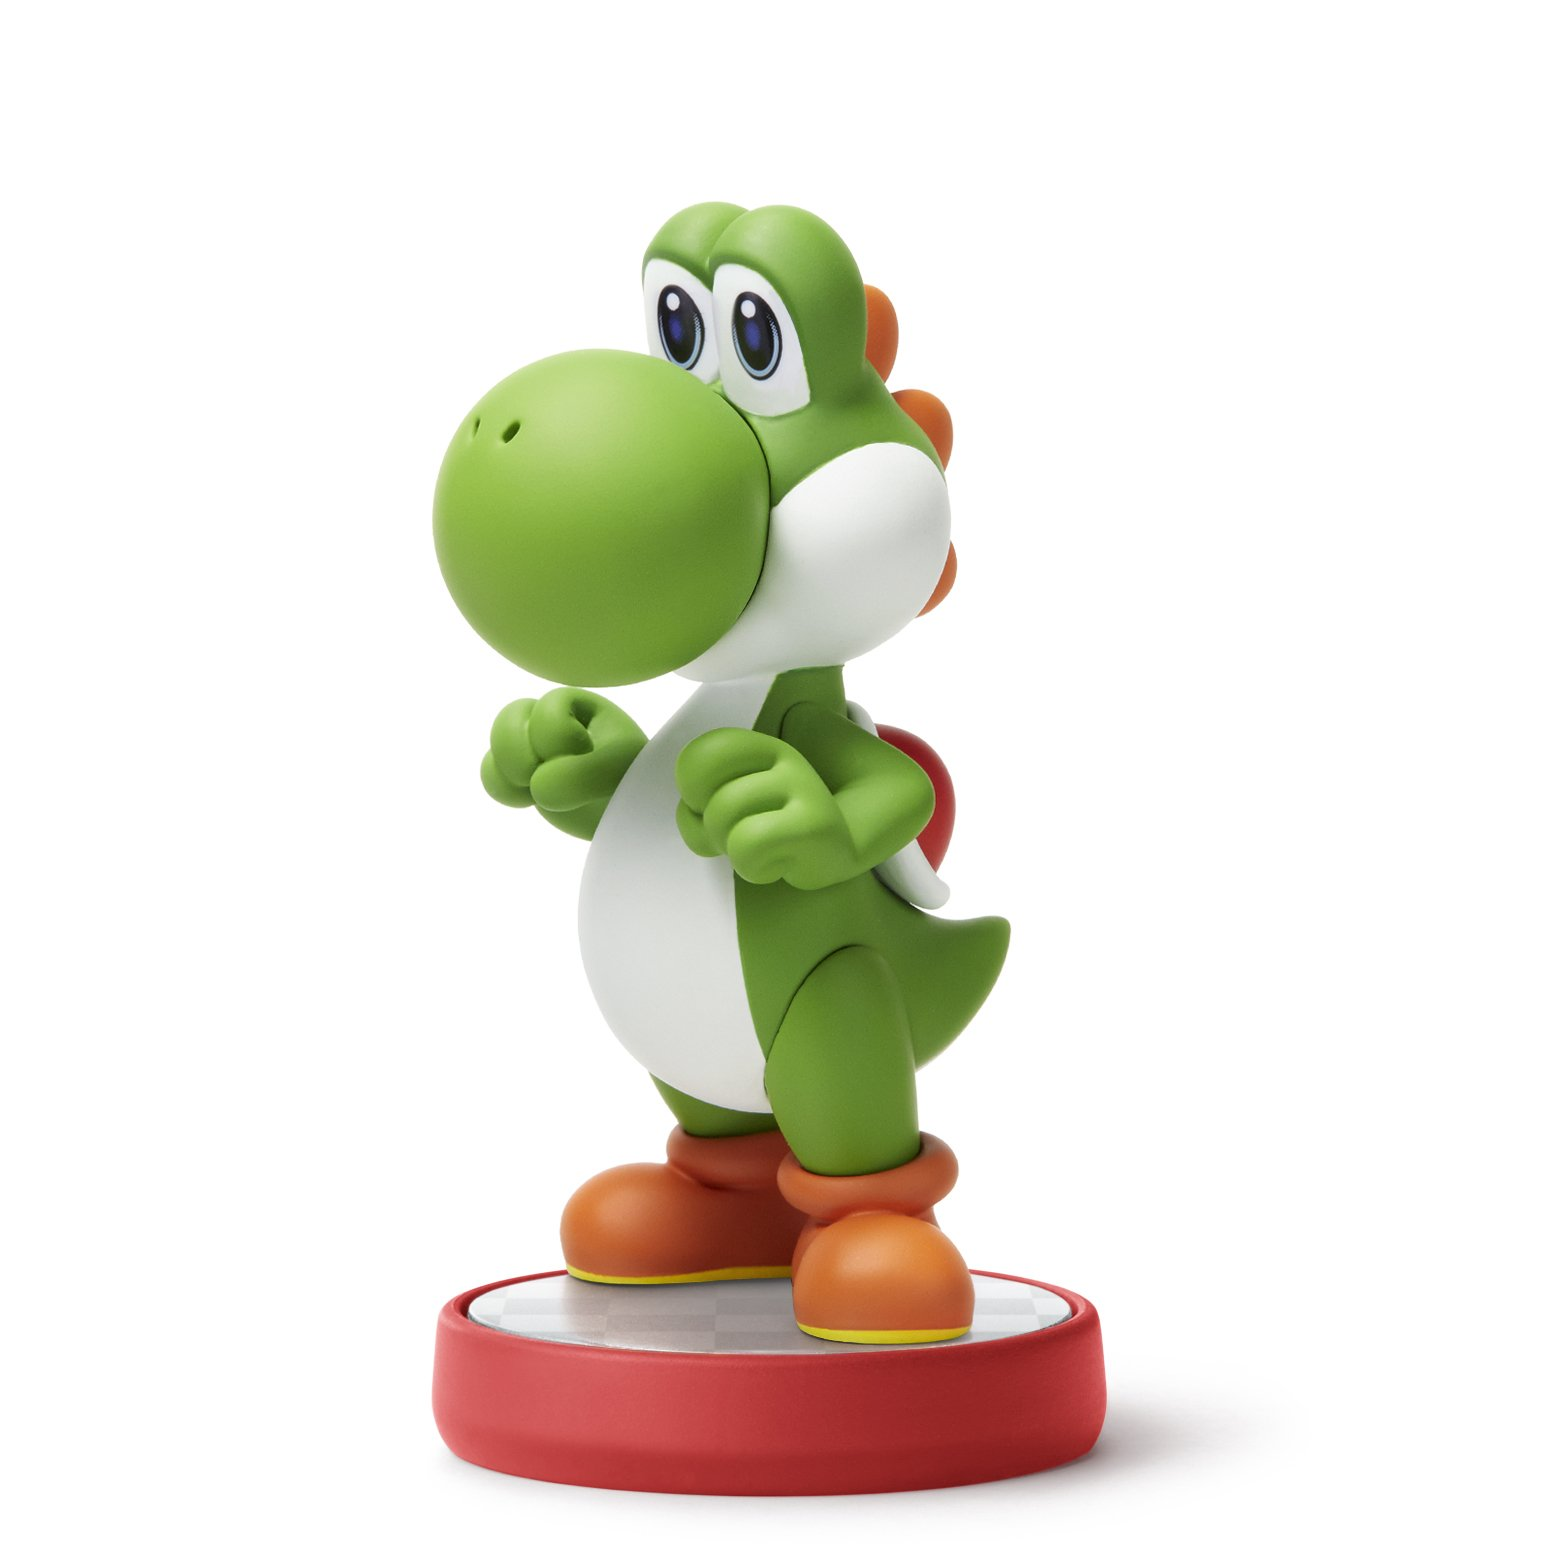 Yoshi amiibo (Super Mario Bros Series) by Nintendo